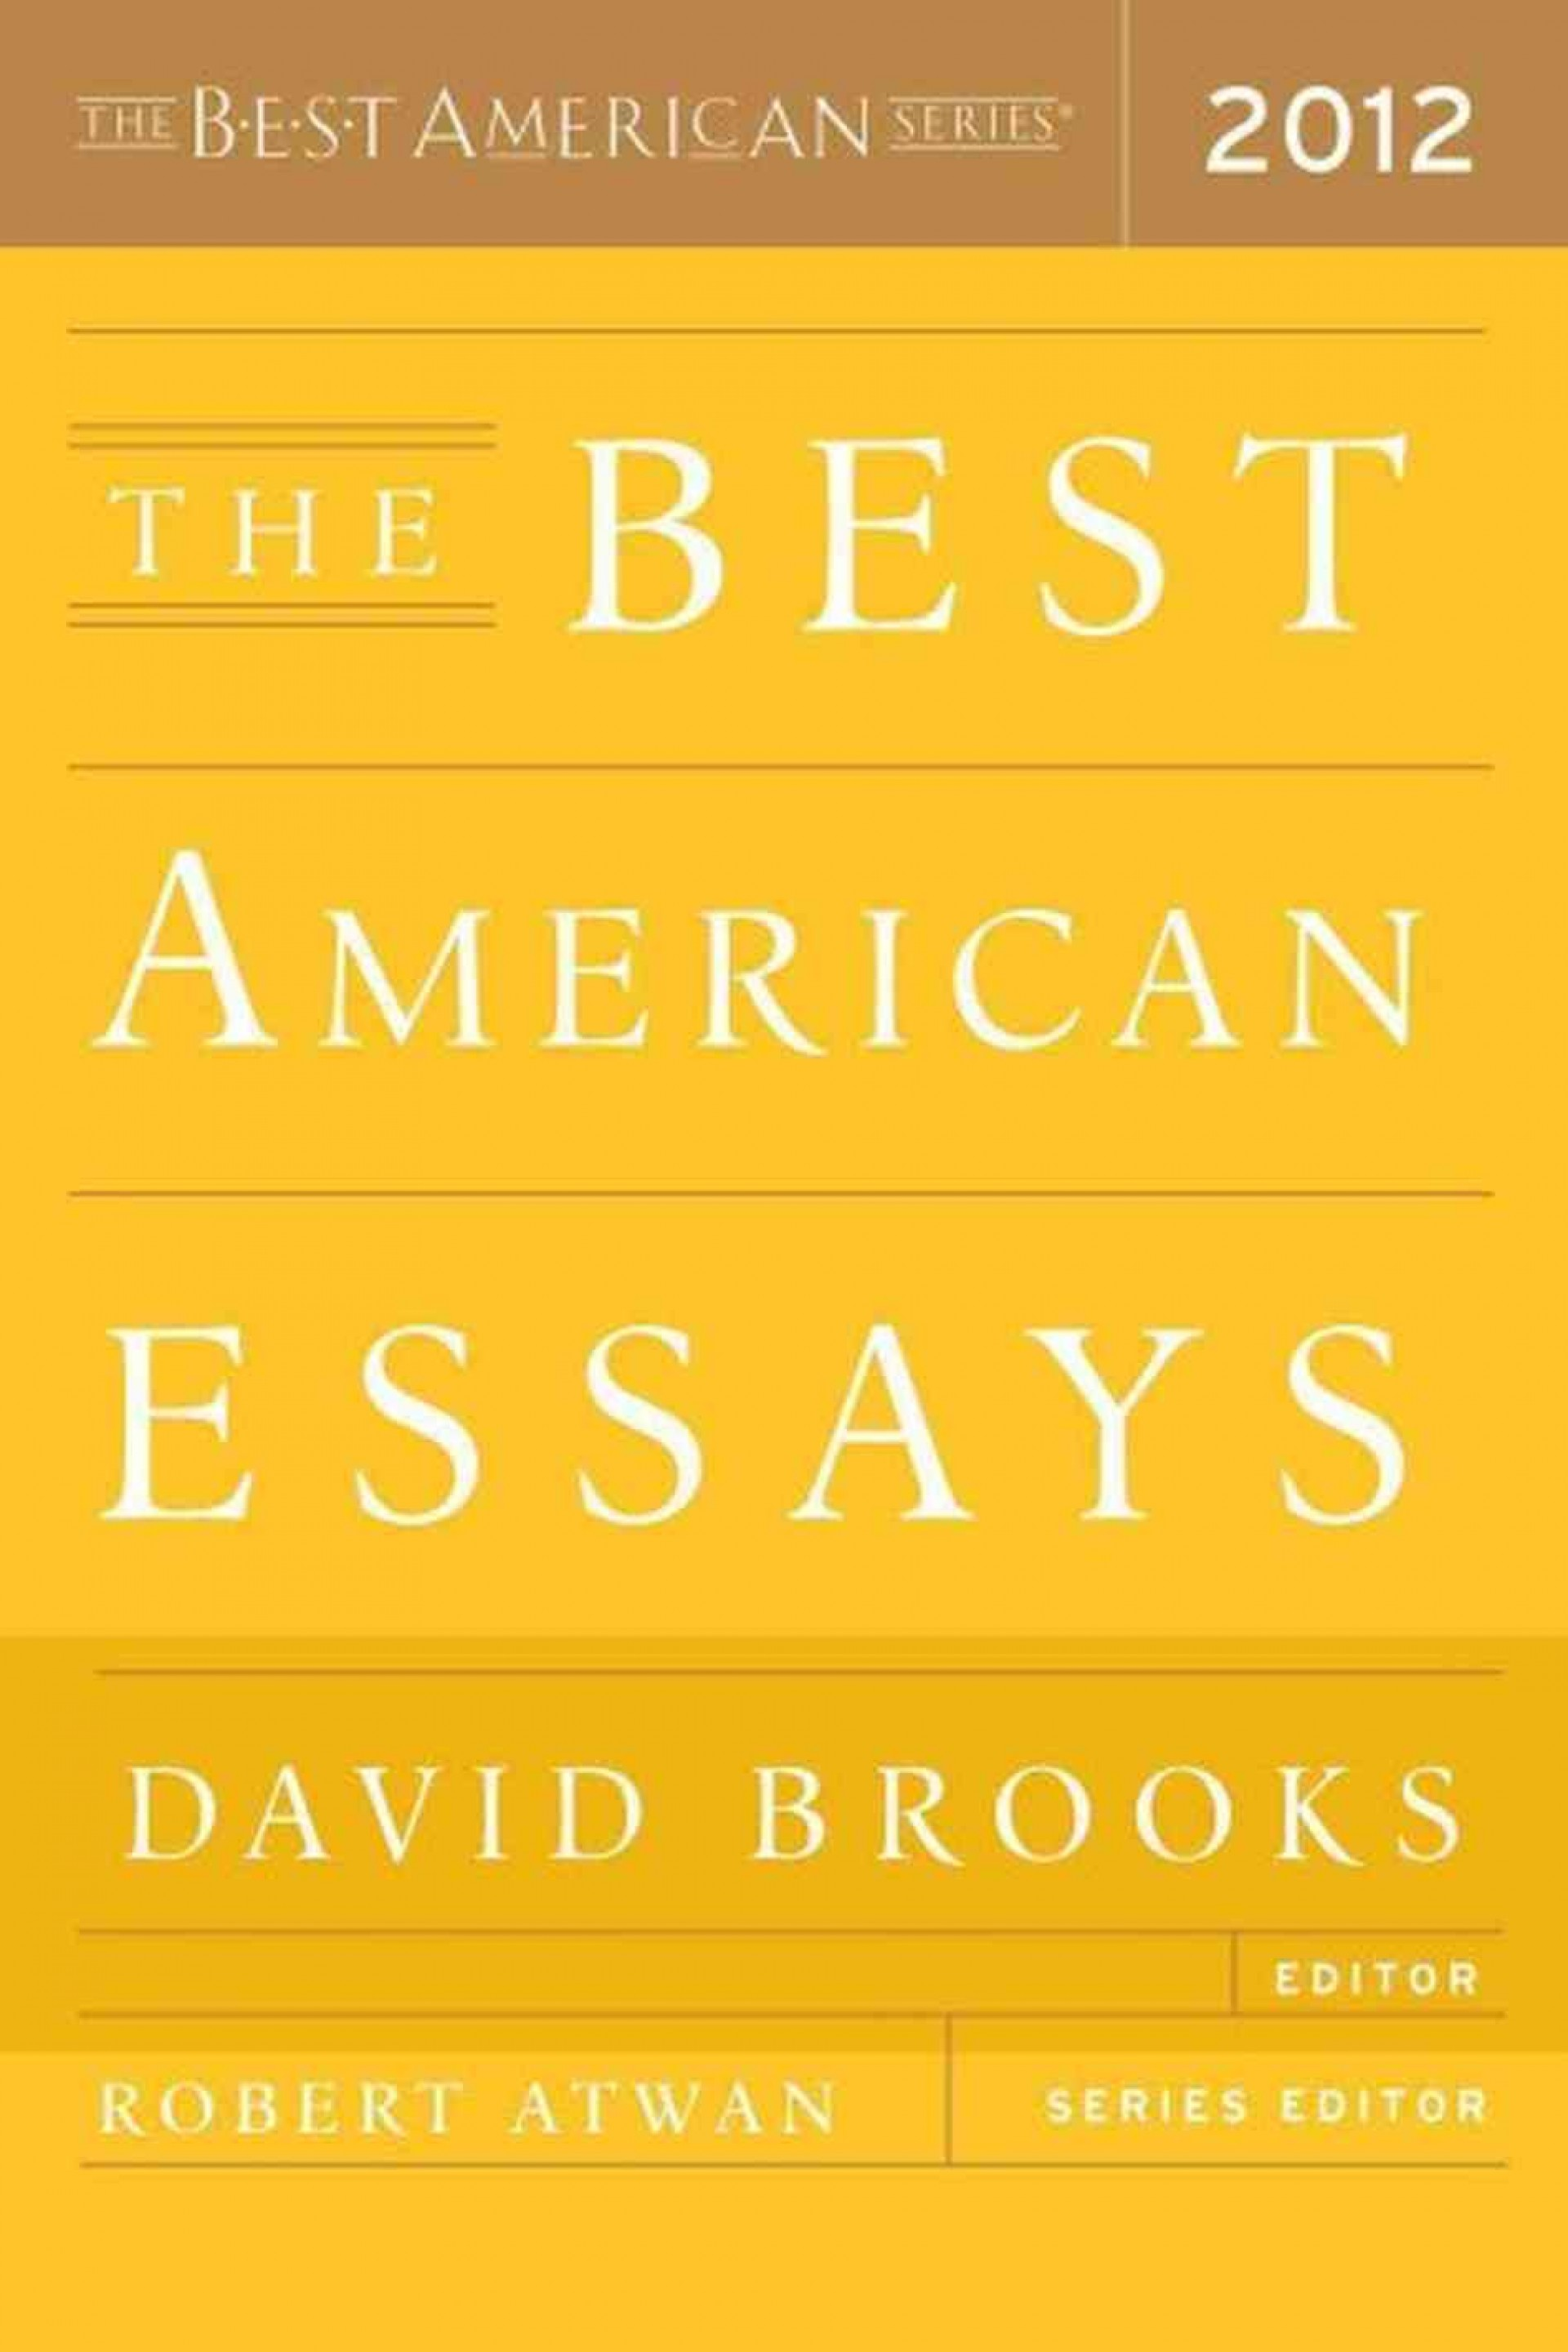 012 The Best American Essays 2012 Essay Wonderful Of Century Table Contents 2013 Pdf Download 1920